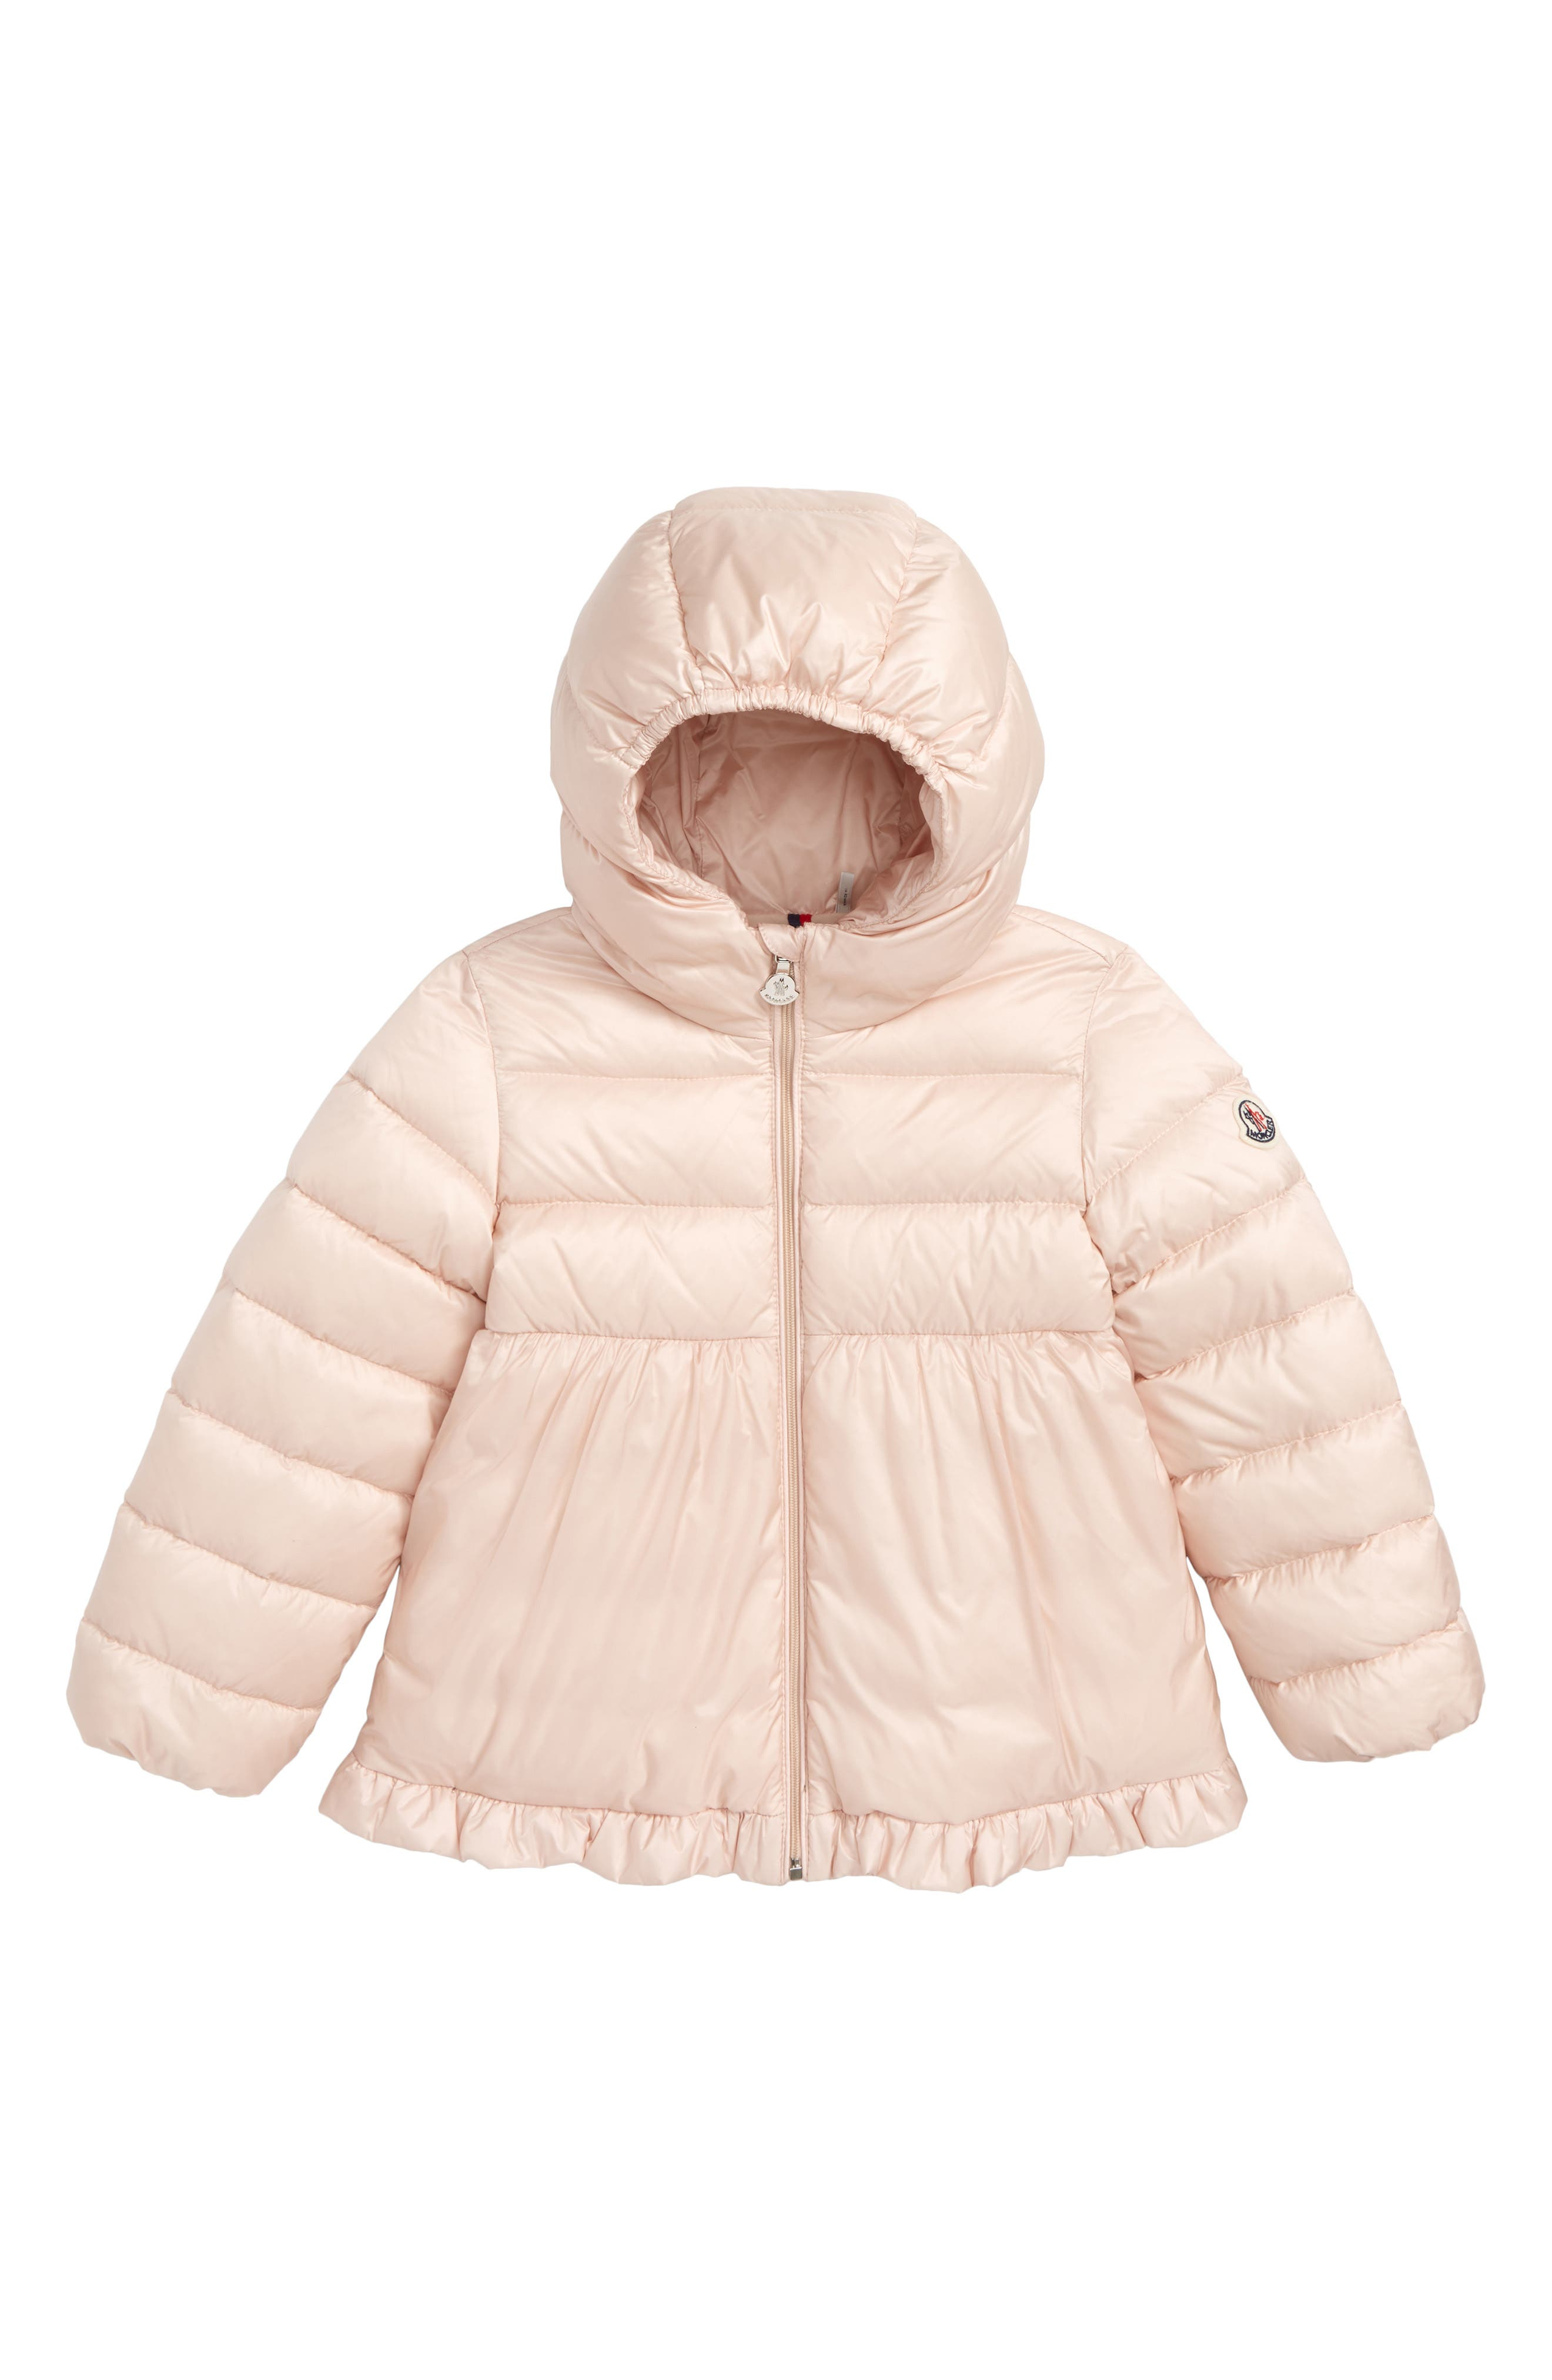 MONCLER Odile Insulated Hooded Down Jacket, Main, color, LIGHT PINK